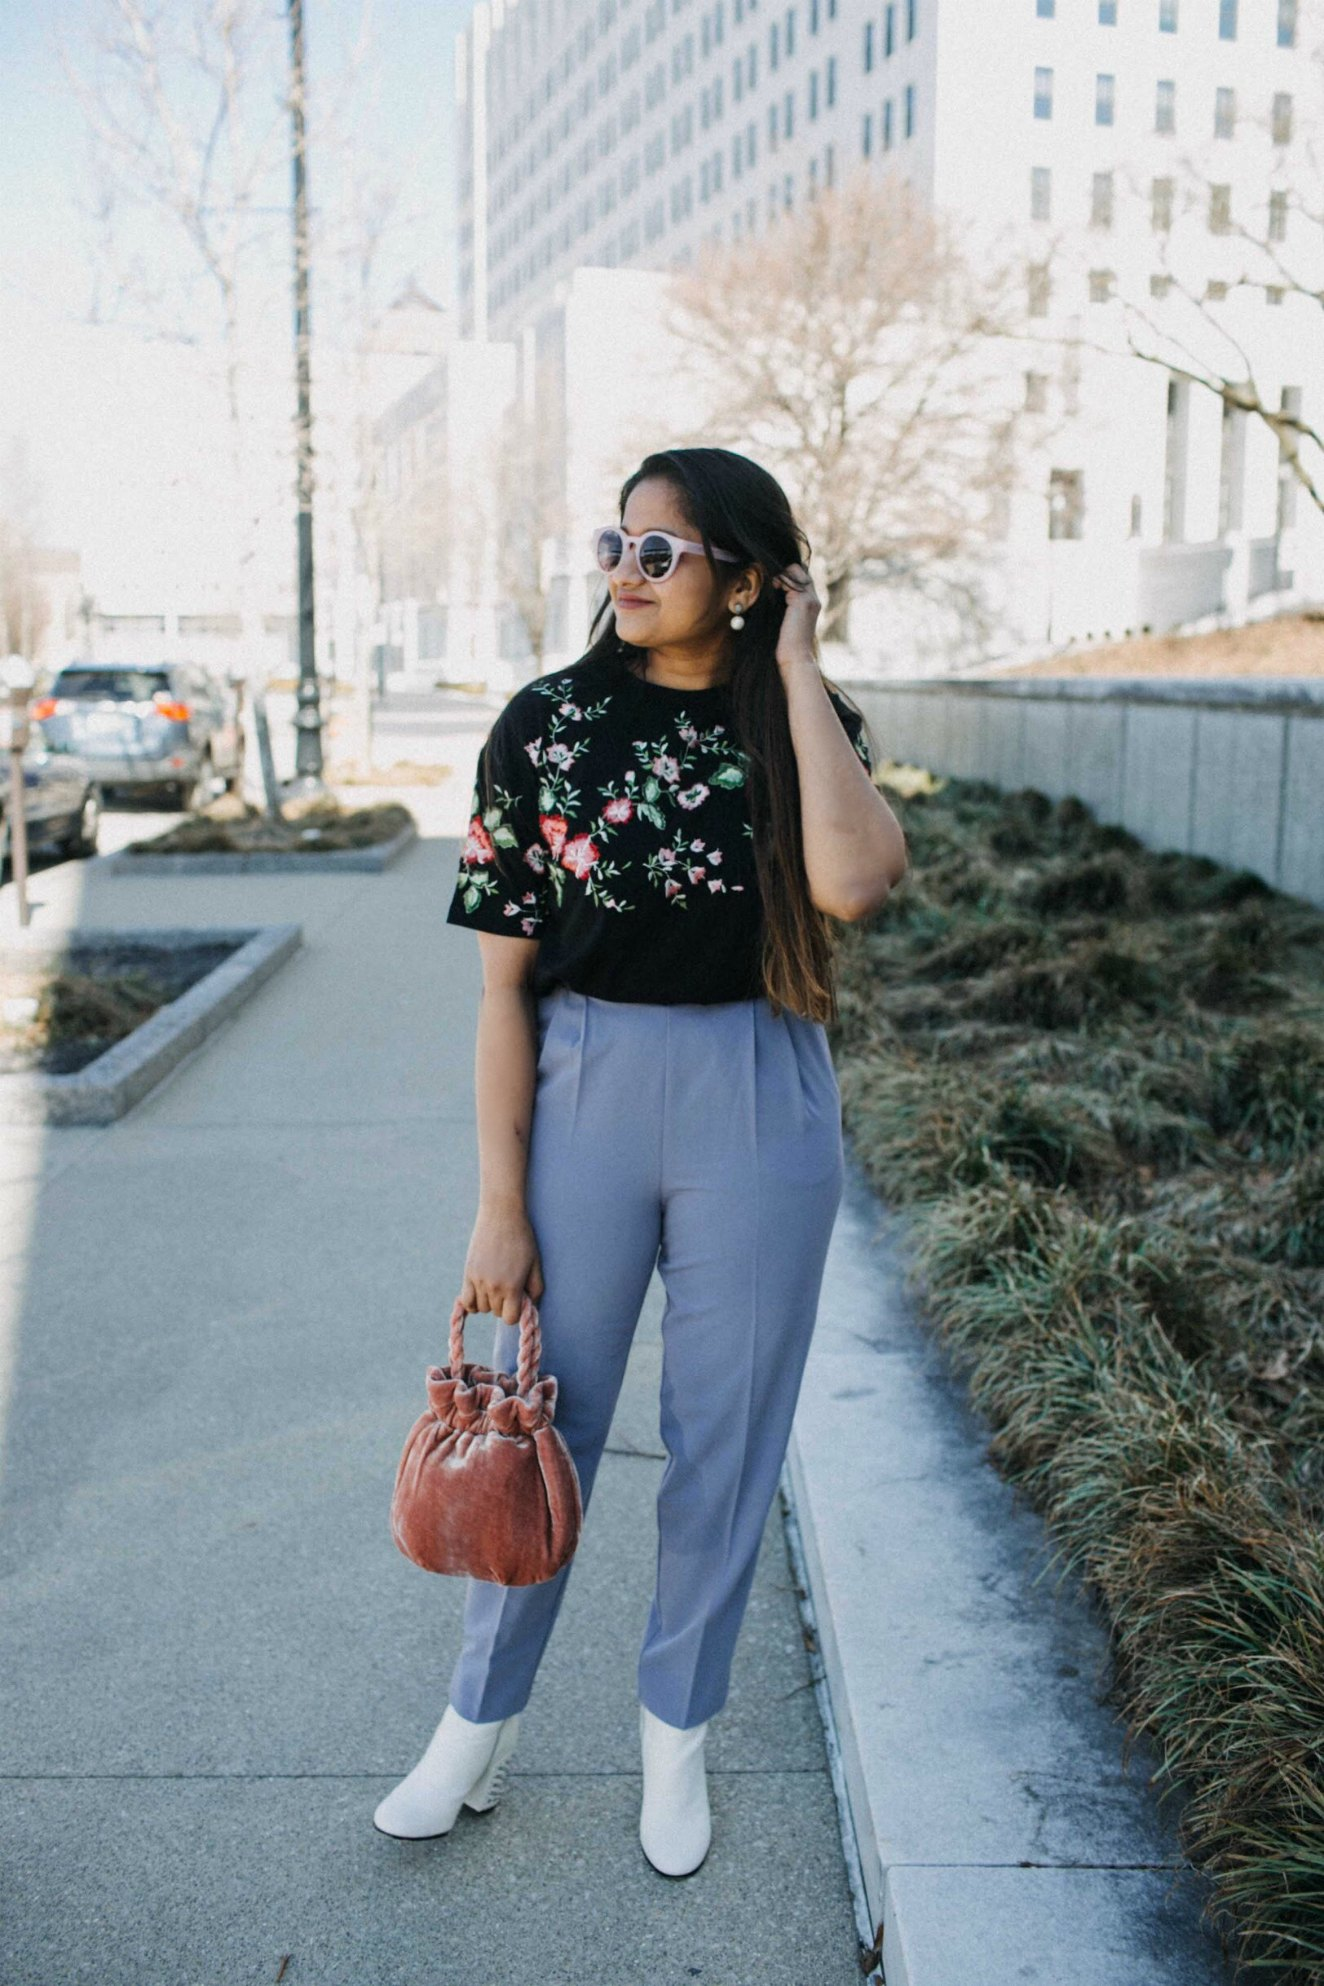 Lifestyle Blog Dreaming Loud wearing Staud Grace velvet clutch bag - Spring Outfit Ideas featured by popular Ohio modest fashion blogger, Dreaming Loud